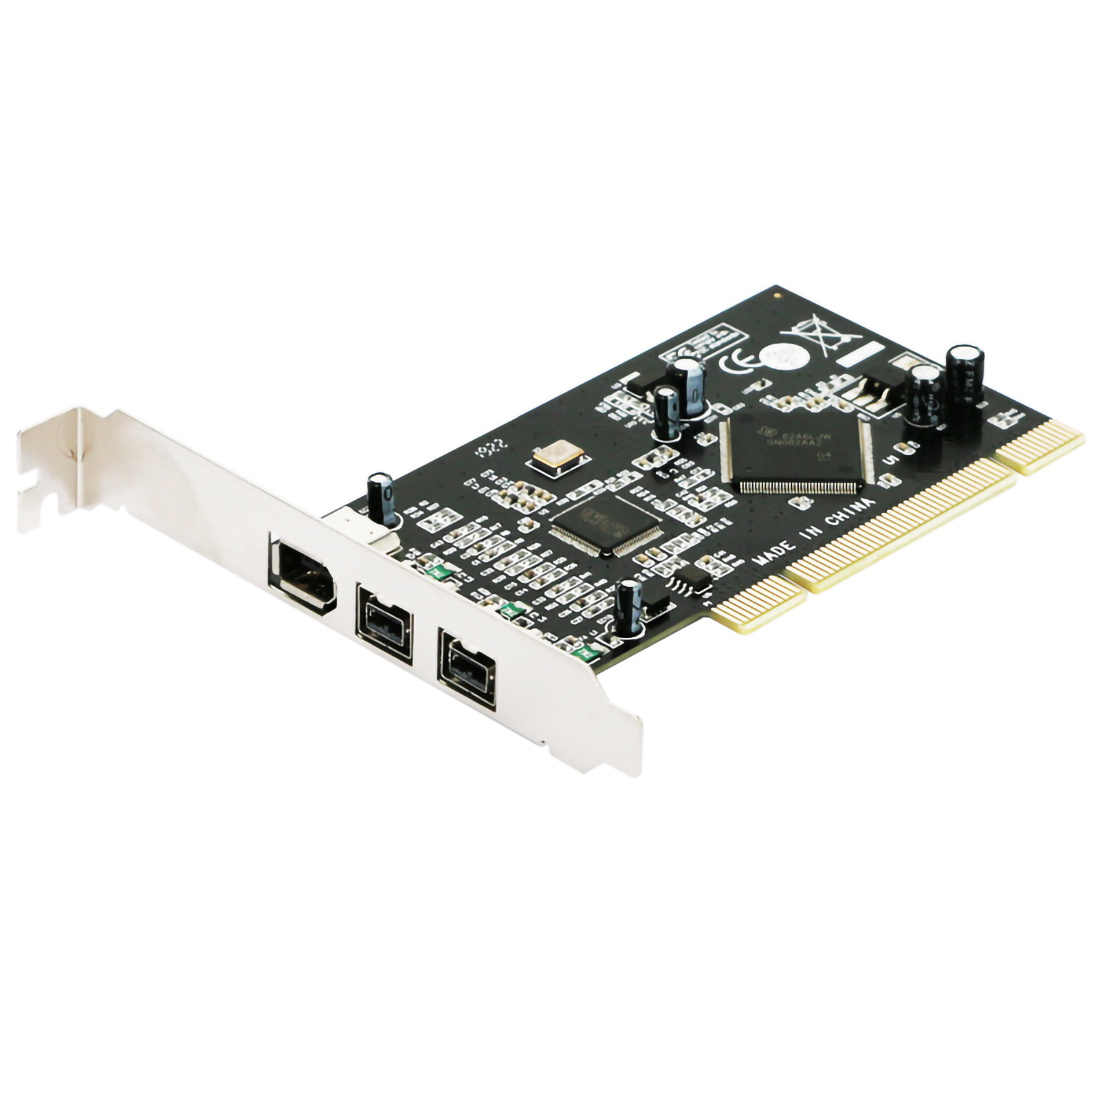 PCI Combo Add on Cards 2x <font><b>IEEE</b></font> <font><b>1394B</b></font> 9 Pin & 1x 1394A 6 Pin 1394 Extension Adapter PCI Controller Card for Firewire Destop PC image